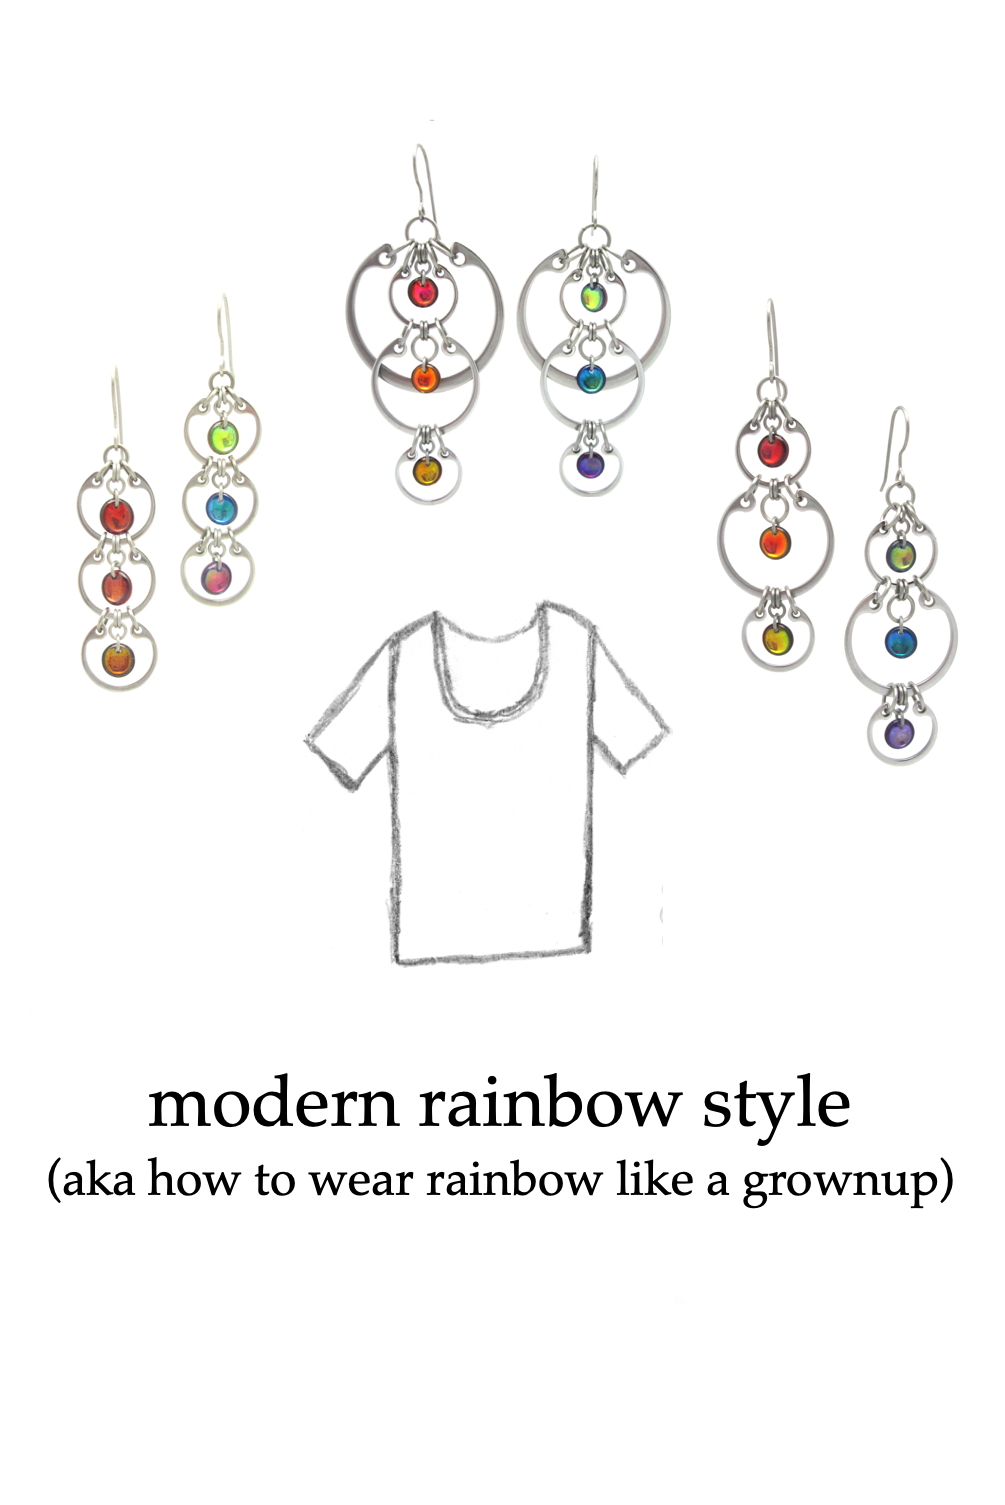 Photos of Wraptillion's modern linked circles earrings with rainbow glass, including the Cascading Rainbow Earrings, Alternating Rainbow Earrings, and Tripled Rainbow Earrings, with a pencil sketch of a scoop-neck tee. Text on image reads: modern rainbow style (aka how to wear rainbow like a grownup)